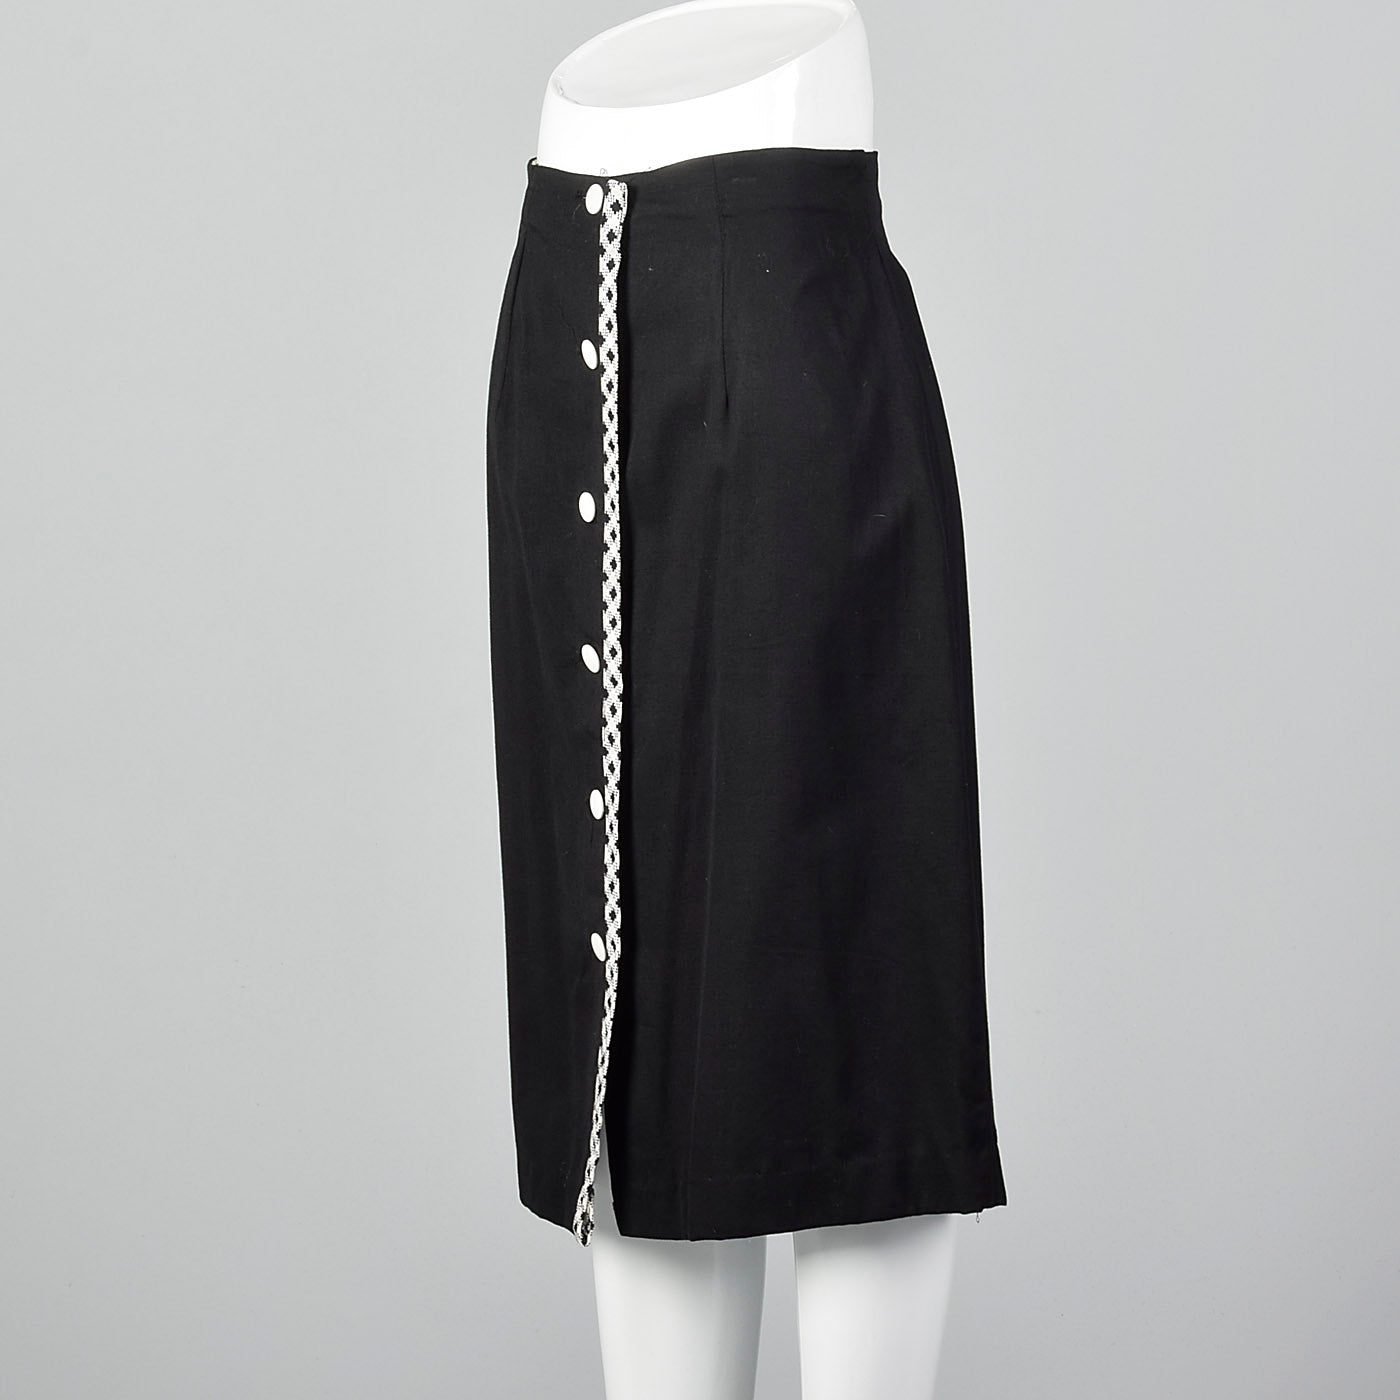 1960s Black Polished Cotton Skirt with White Trim